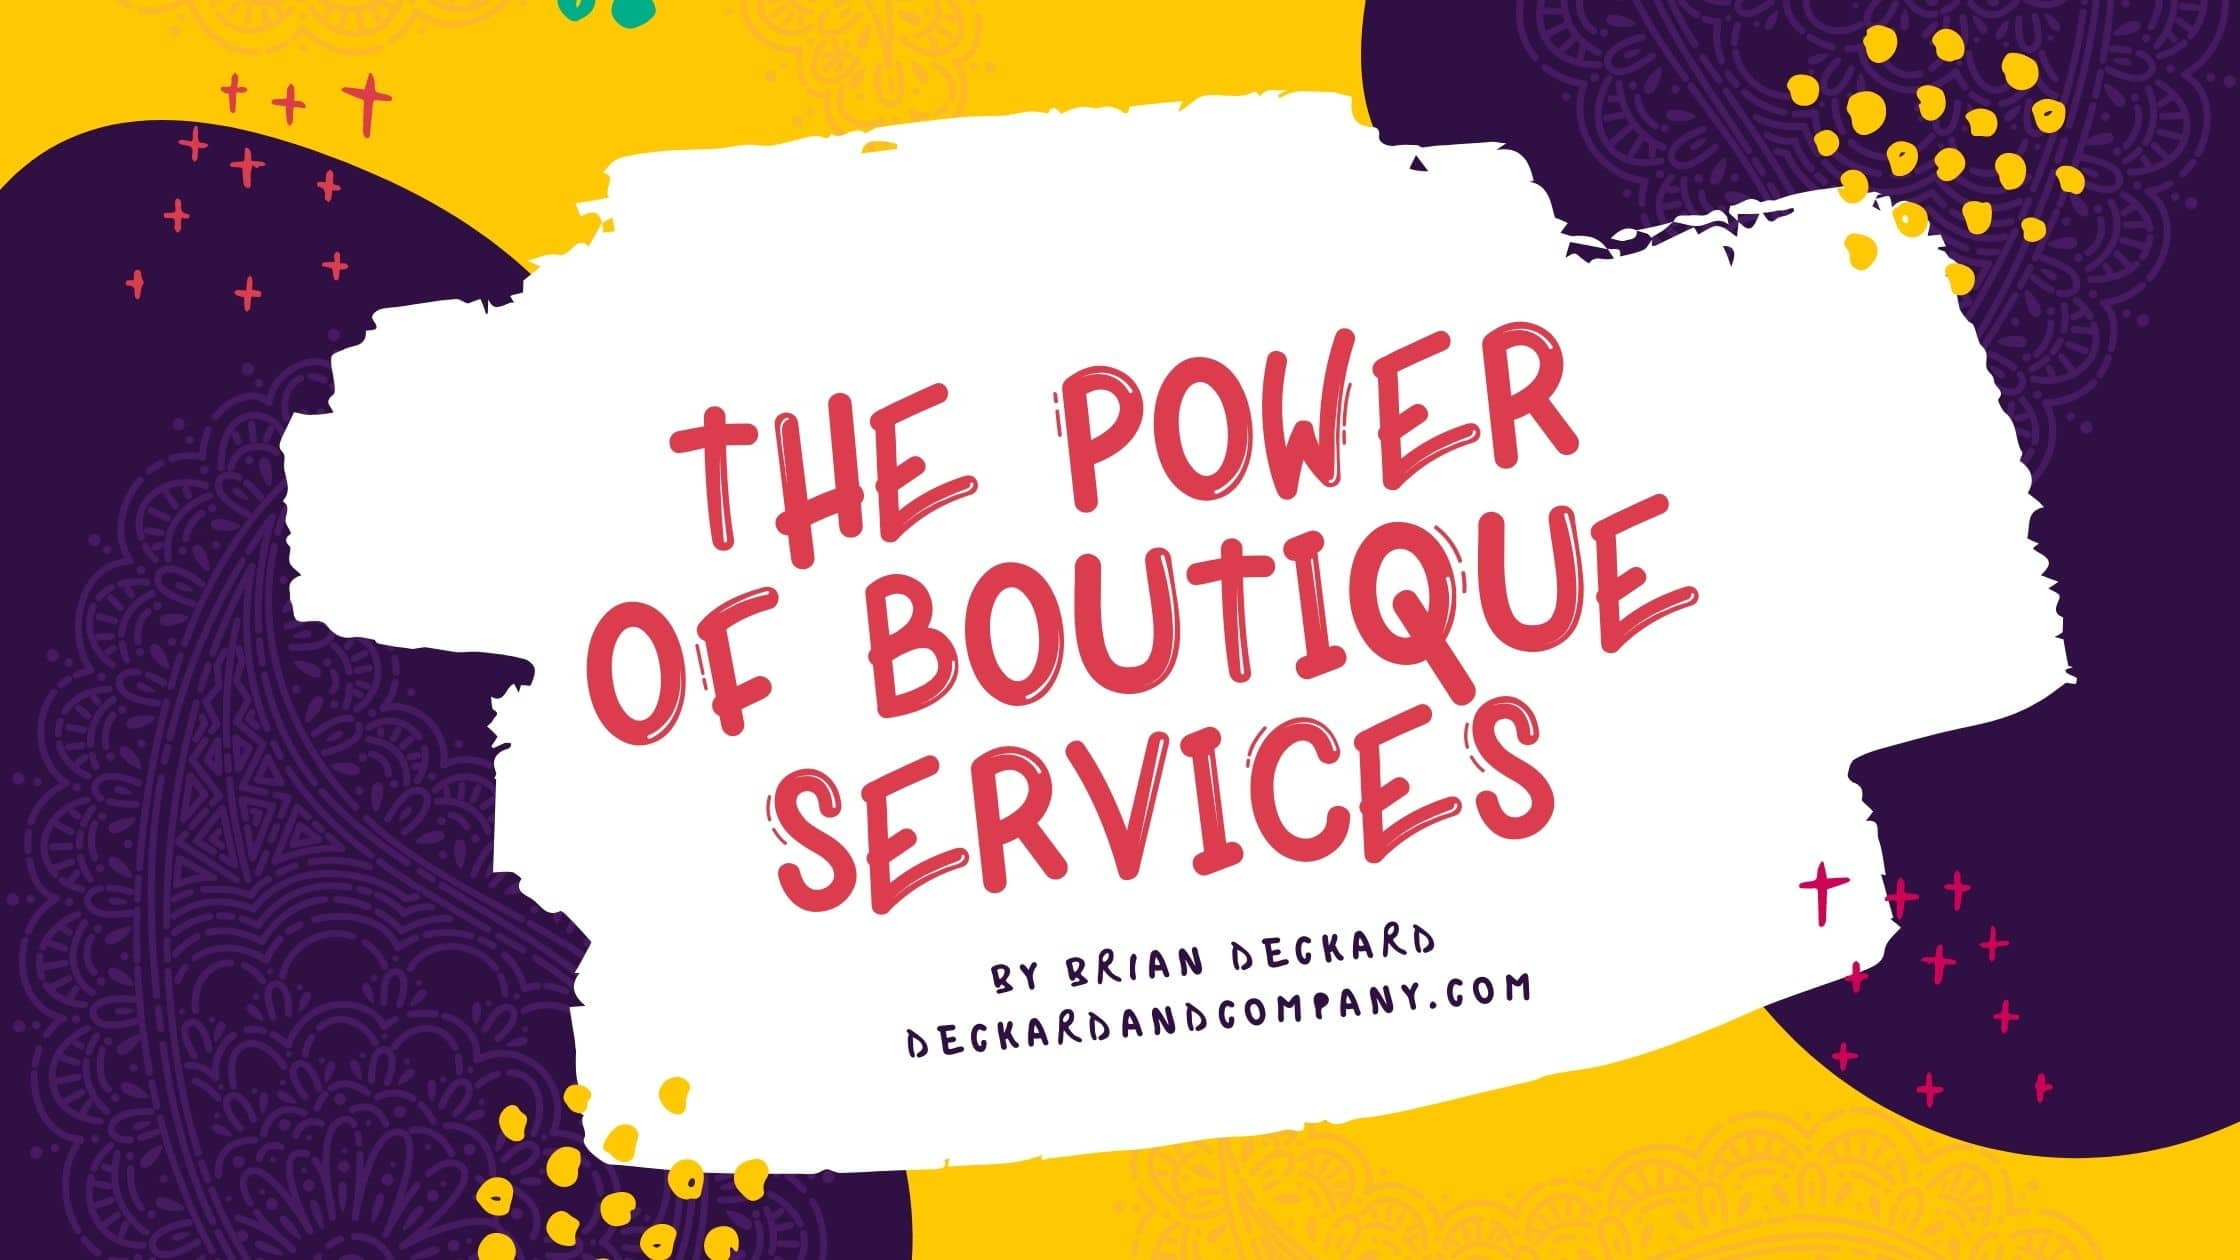 The Power of Boutique Services for WordPress Website Design, and Social Media Marketing and Management